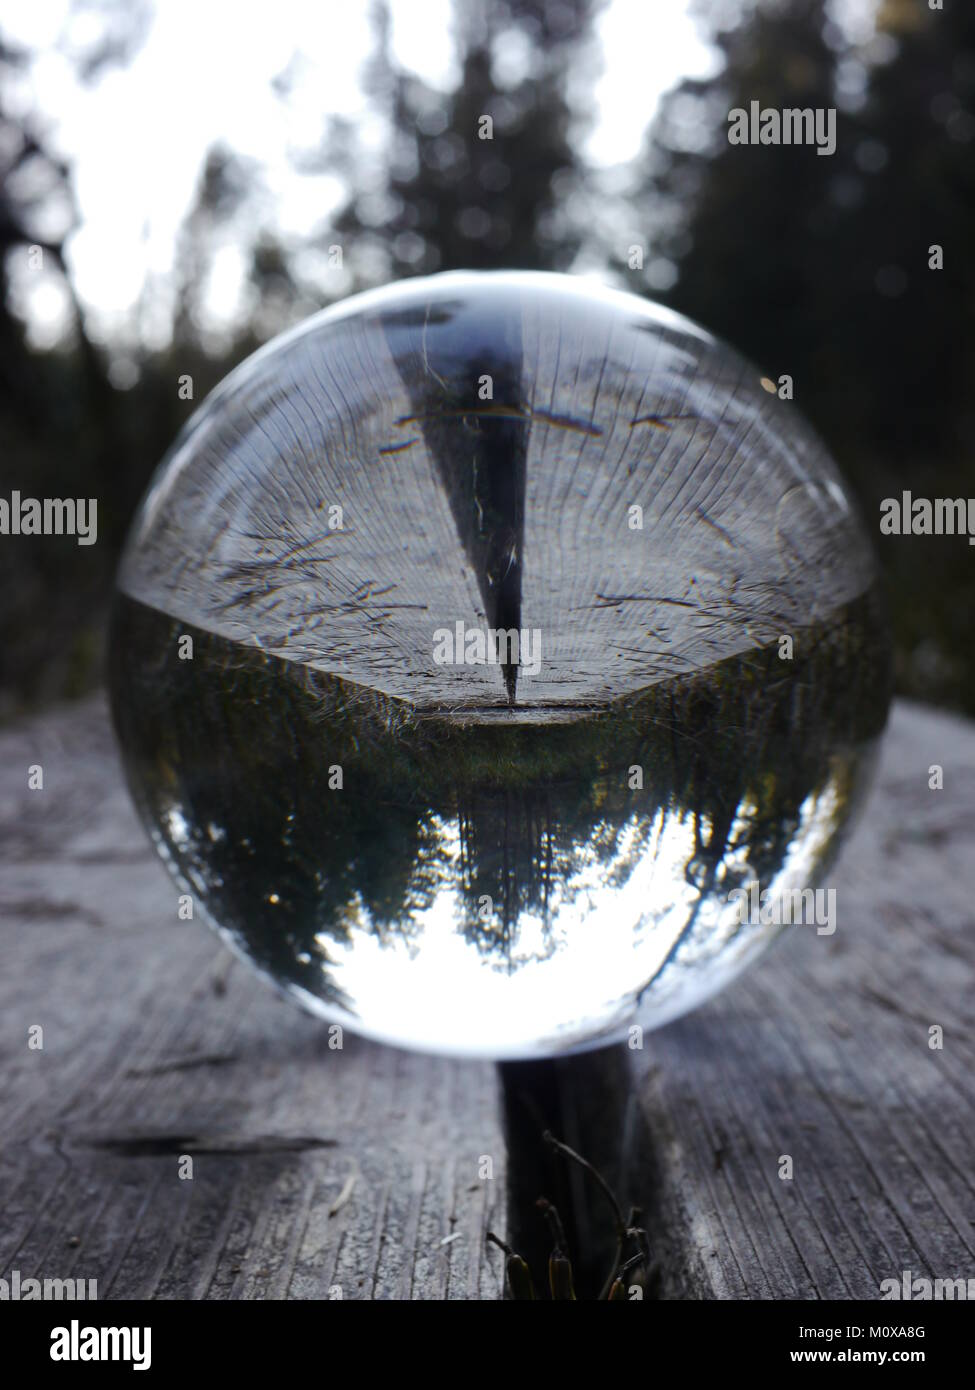 bowl on wood which is mirror inverted  - Stock Image